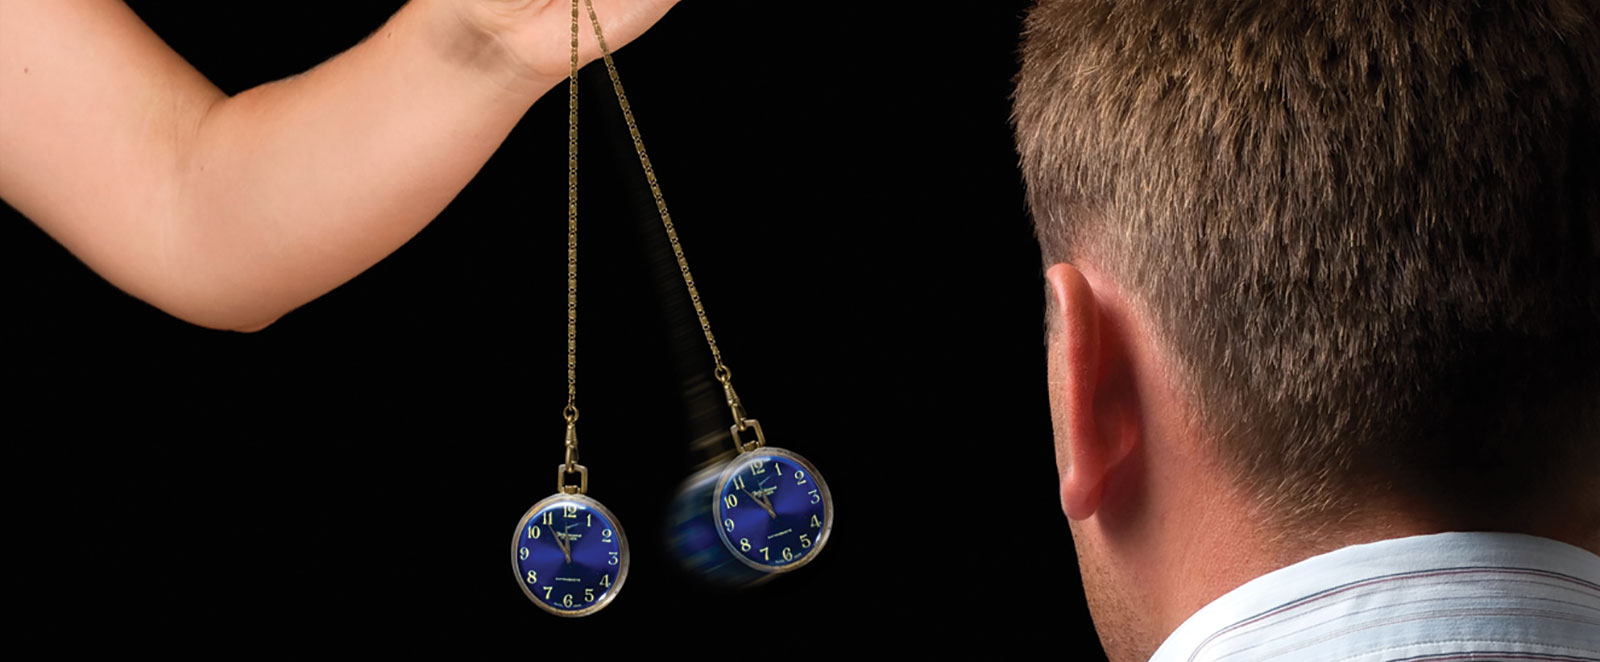 Hypnosis and Hypnotherapy Training for Body and Mind ...